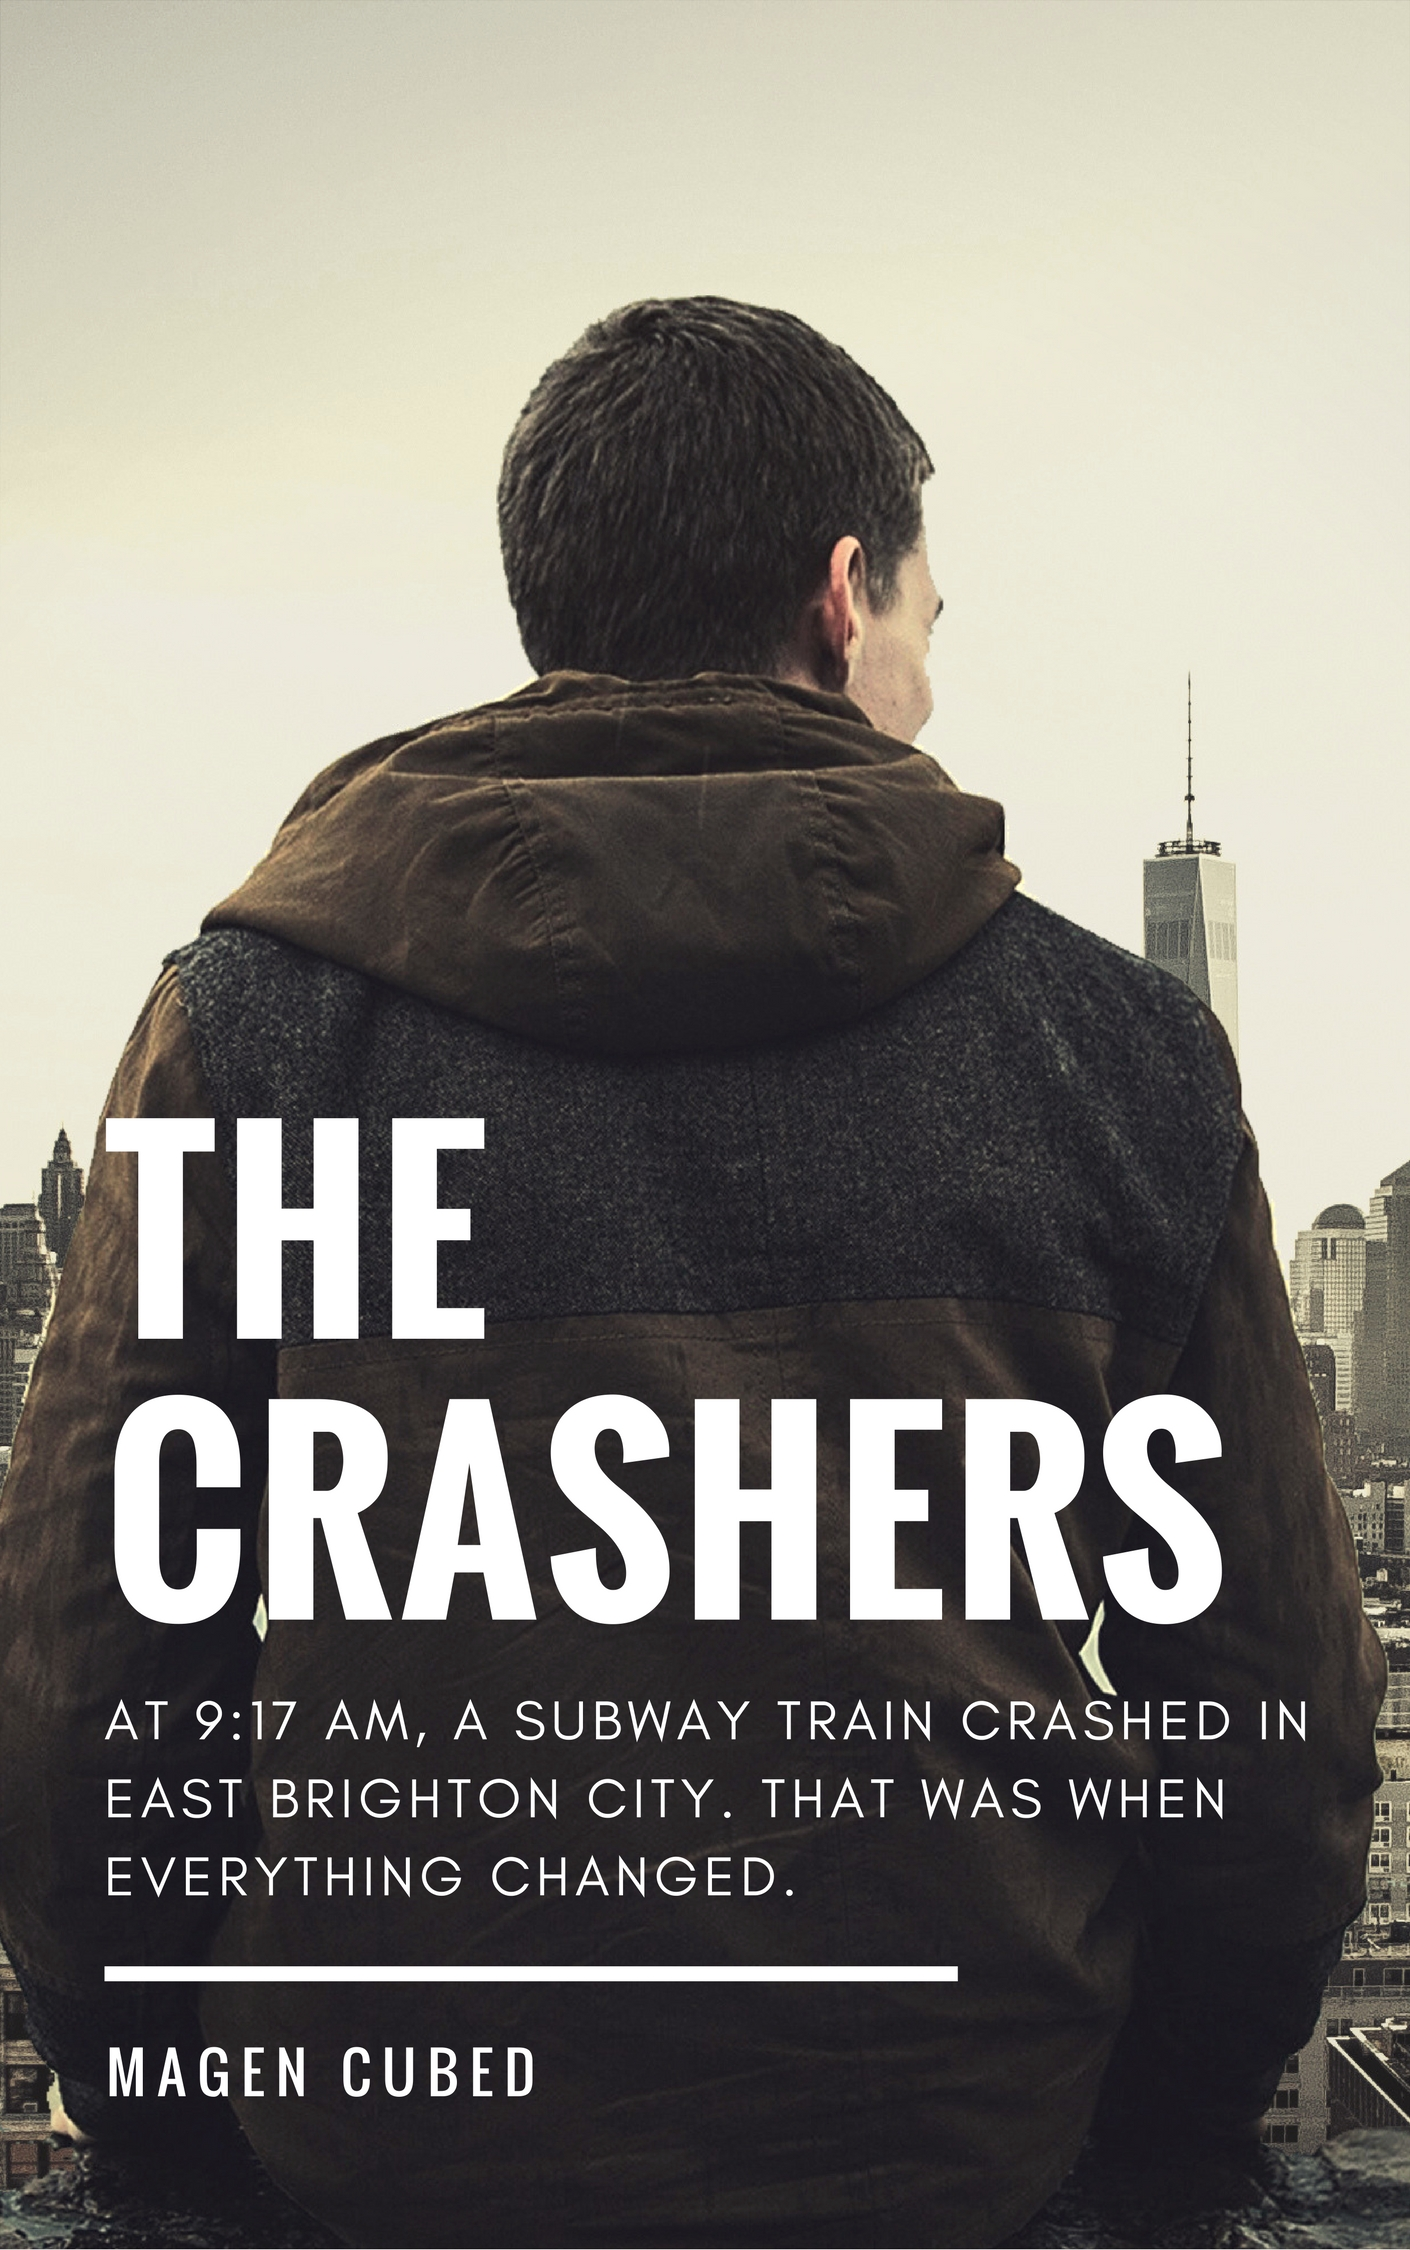 It all started with a crash... - At 9:17 AM, a subway train crashed in East Brighton City. That was when everything changed.Five survivors emerge from the accident: former detective Kyle Jeong; single mother Norah Aroyan; Afghanistan veteran Adam Harlow; the genius Clara Reyes; and the dying Bridger Levi. These five strangers walk away from the crash unscathed, only to realize the event has left each of them with strange new powers. As their city falls into chaos around them, they find themselves drawn into a story far more dangerous than they ever knew, and it will change their lives forever.Death, undeath, superpowers, and apocalyptic visions. Welcome to East Brighton City. Hope you survive.AVAILABLE ON AMAZONAVAILABLE ON ITCH.IO